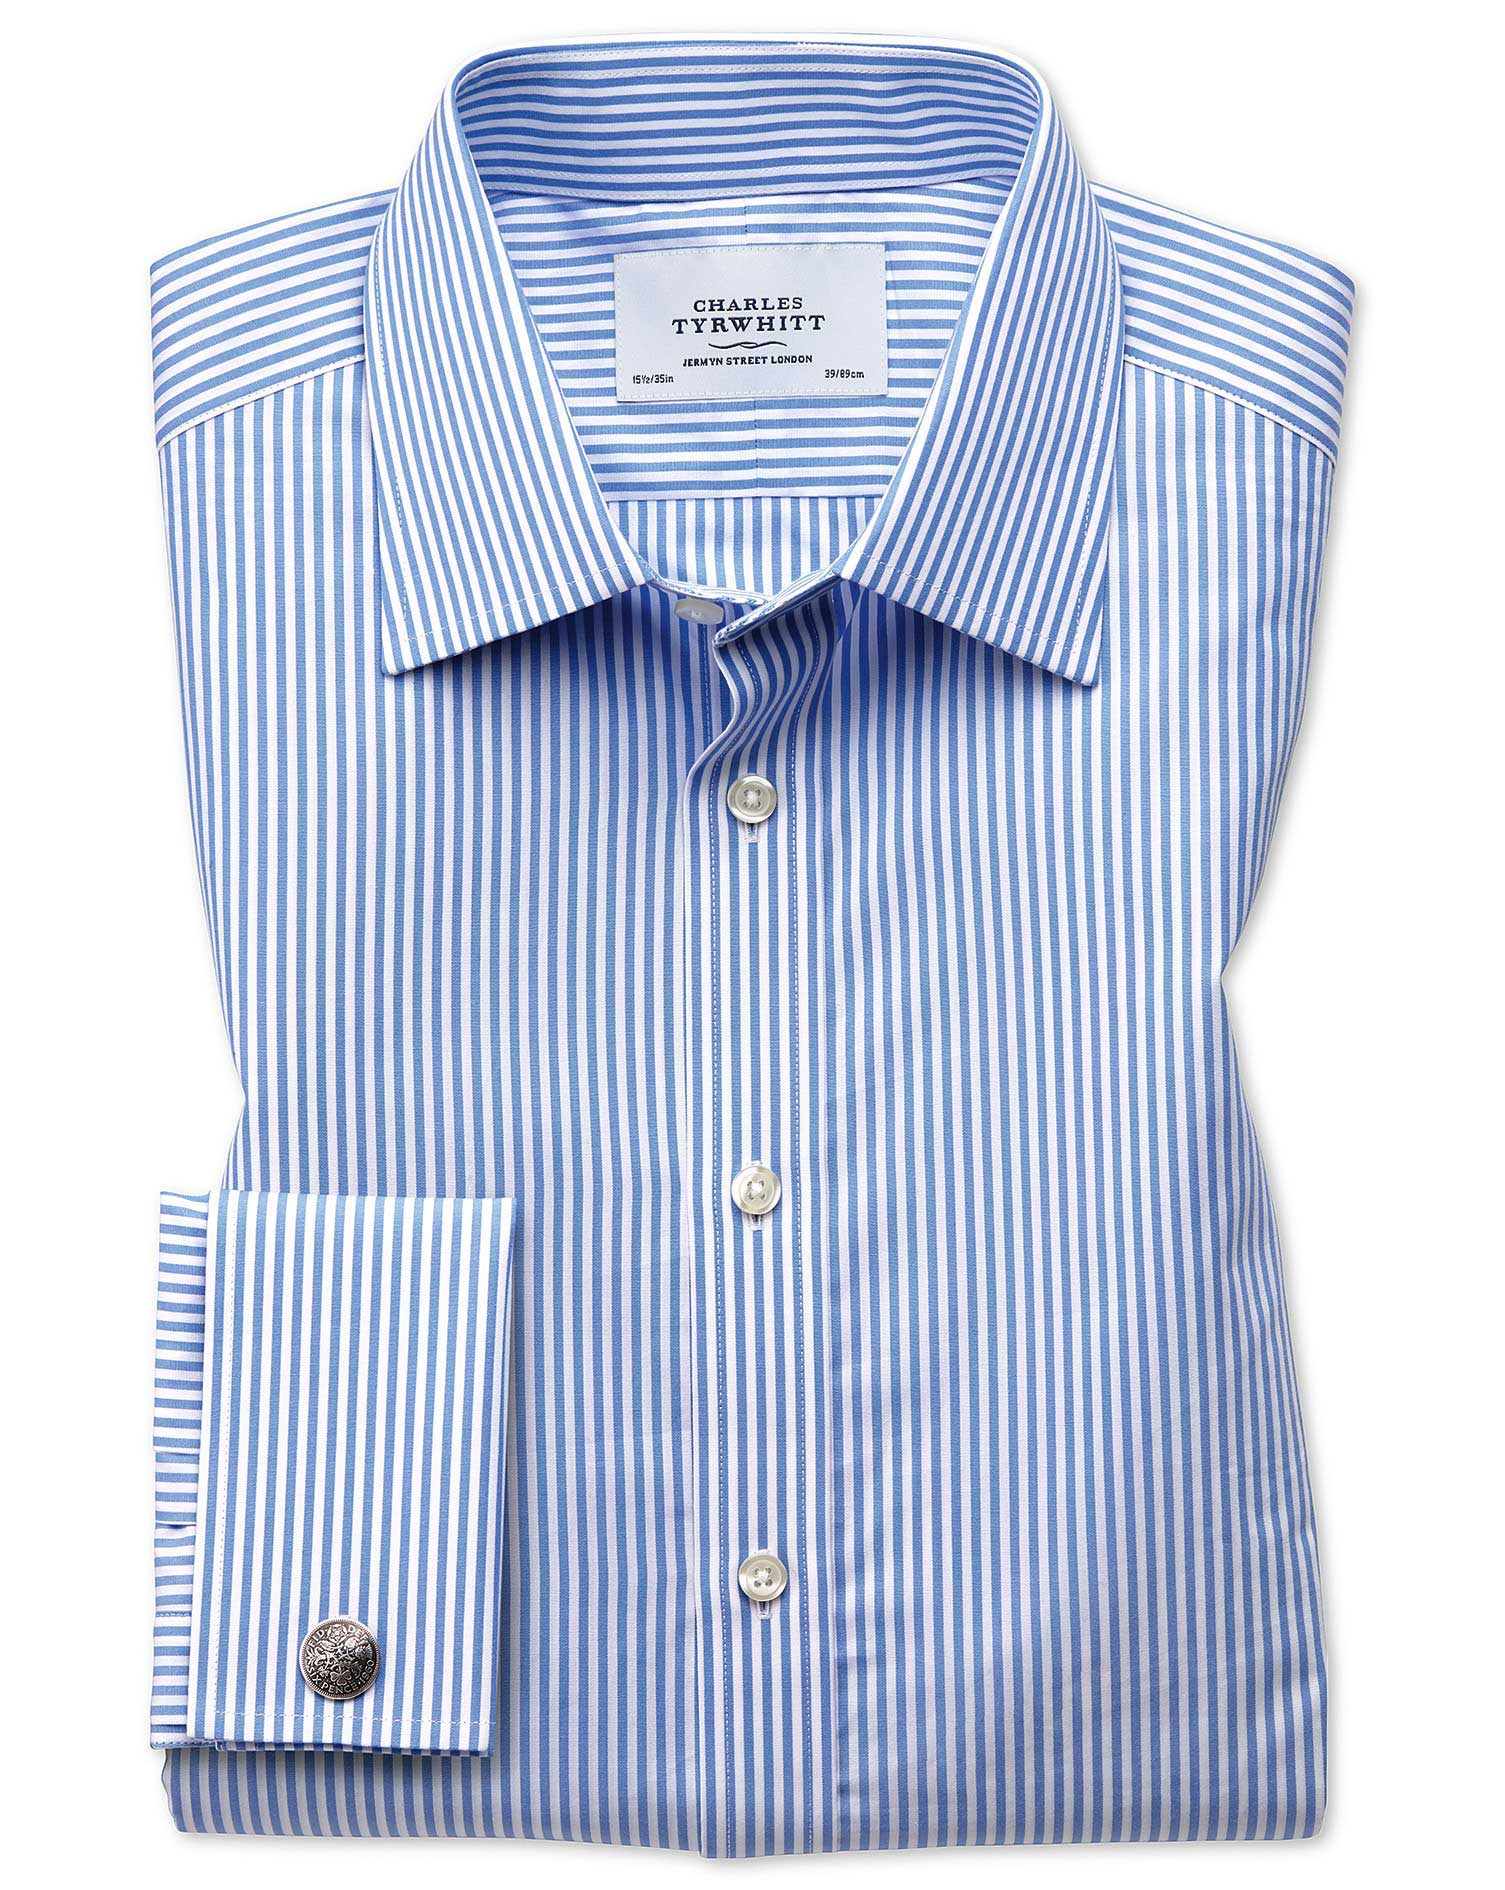 Extra Slim Fit Bengal Stripe Sky Blue Cotton Formal Shirt Single Cuff Size 15/34 by Charles Tyrwhitt